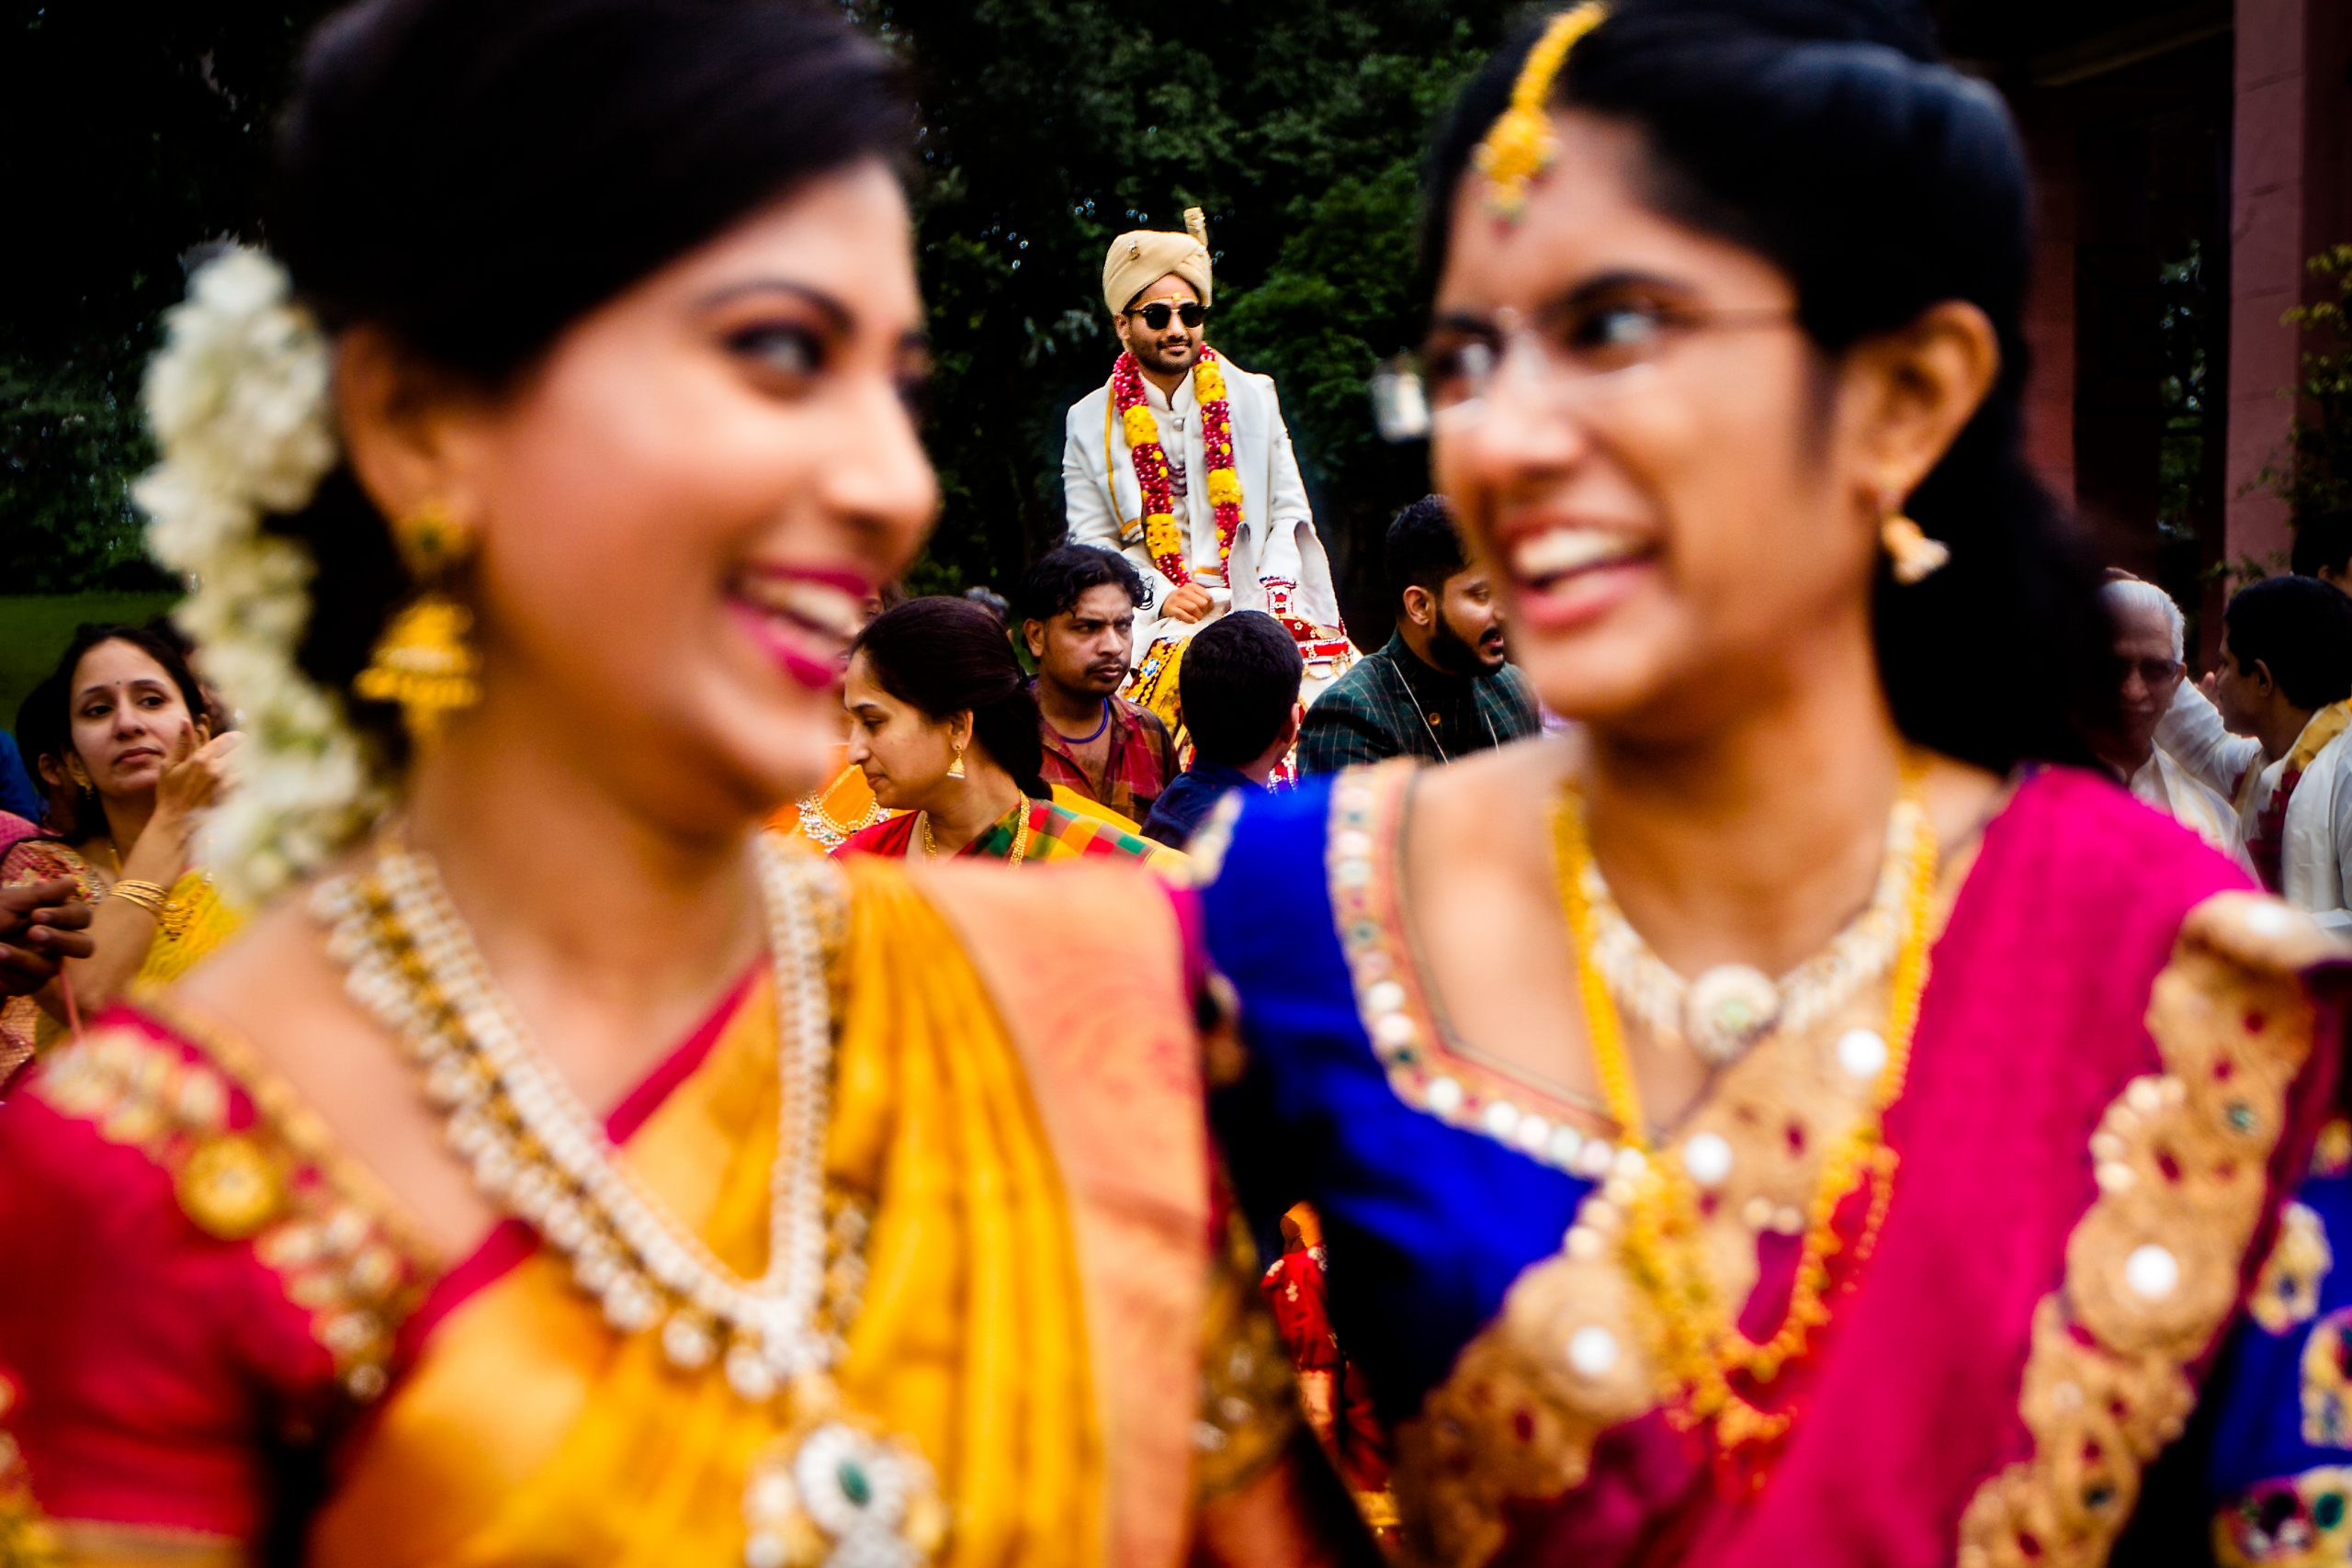 Groom can be seen behind women wearing colorful attire